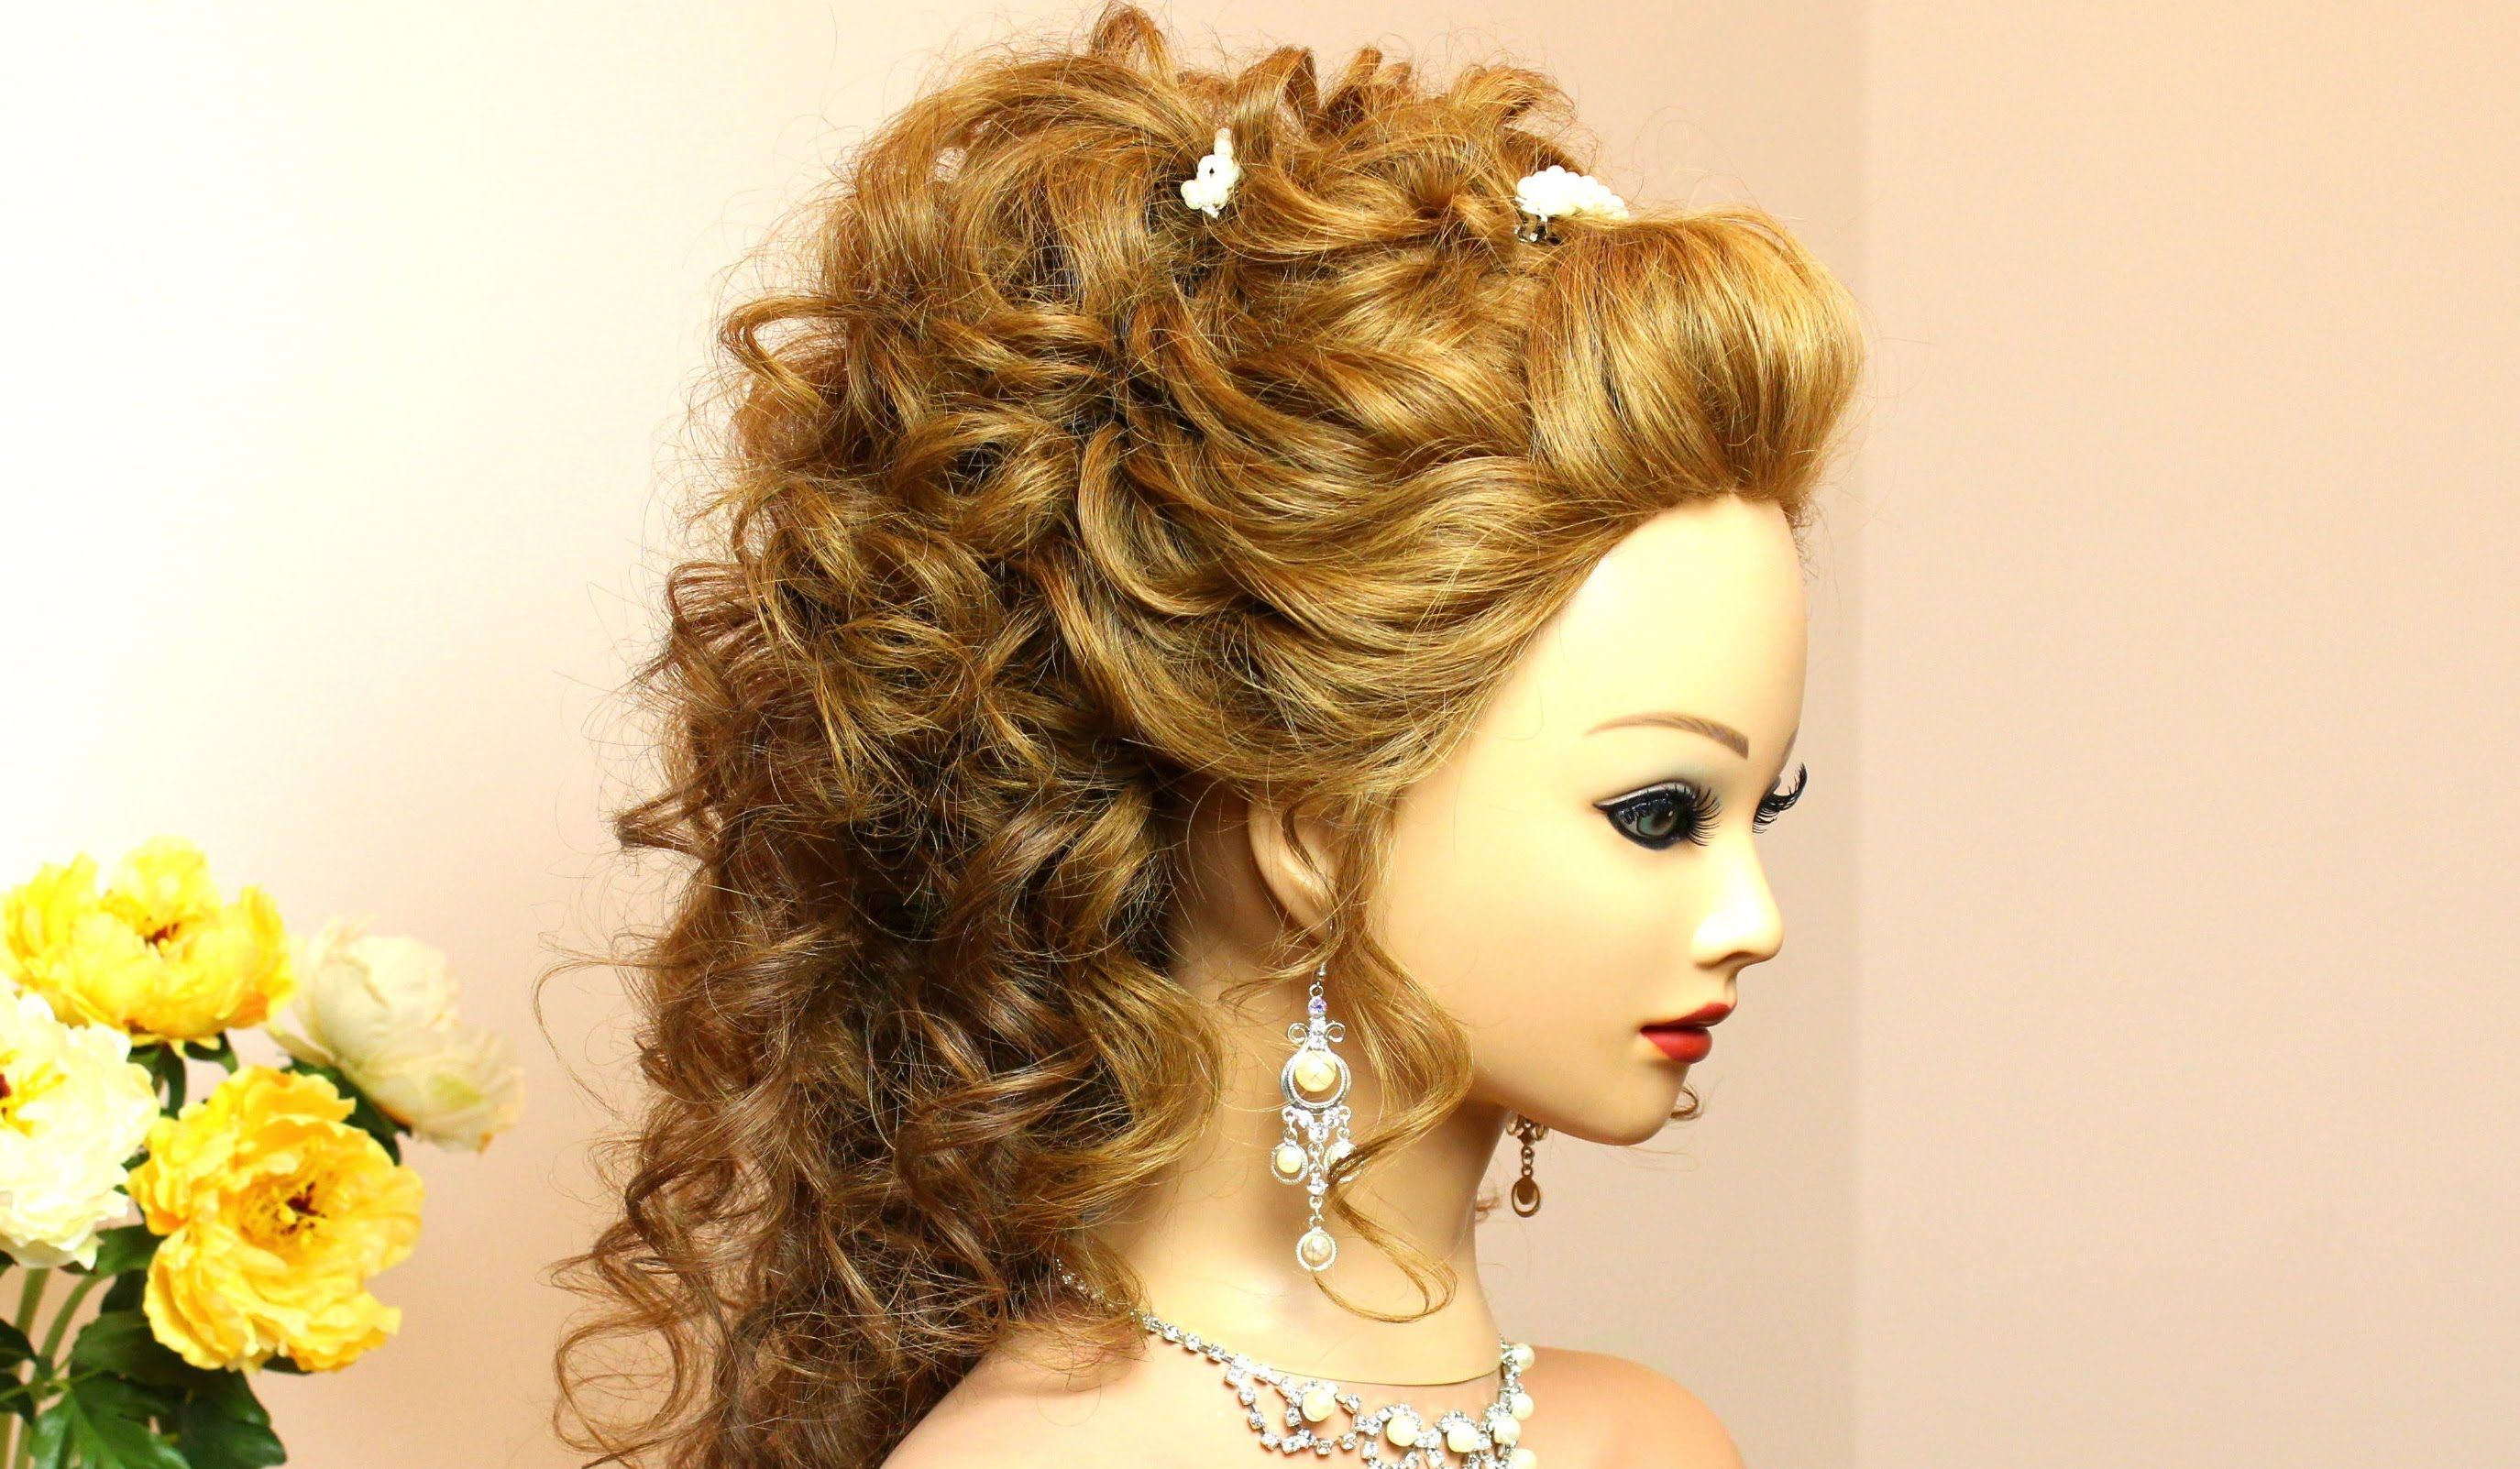 Curly prom wedding hairstyle for long hair